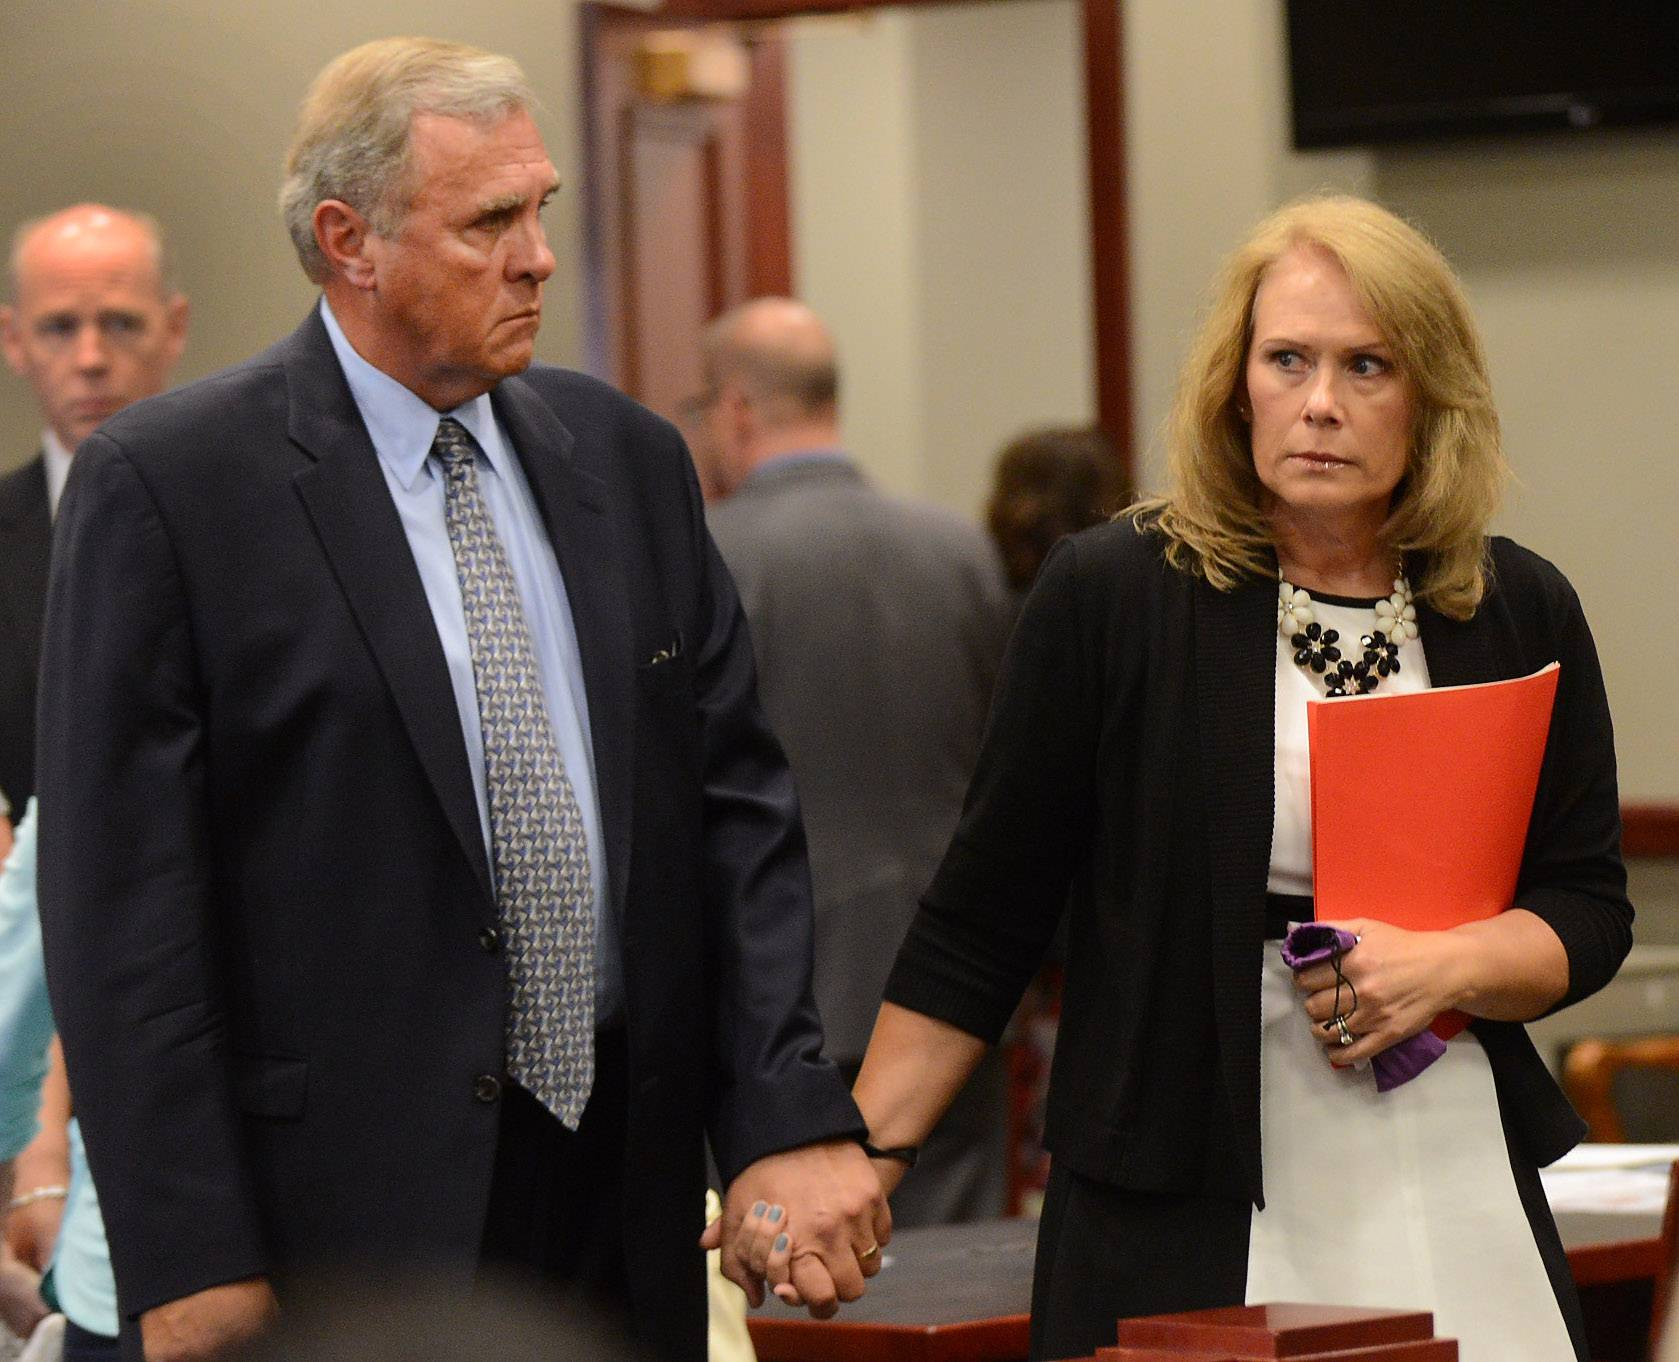 Gary and Ruth Bogenberger enter the Sycamore County courtroom May 8, 2015, where 22 fraternity members were found guilty of misdemeanor charges stemming from the hazing death of their son, Northern Illinois University freshman David Bogenberger of Palatine.